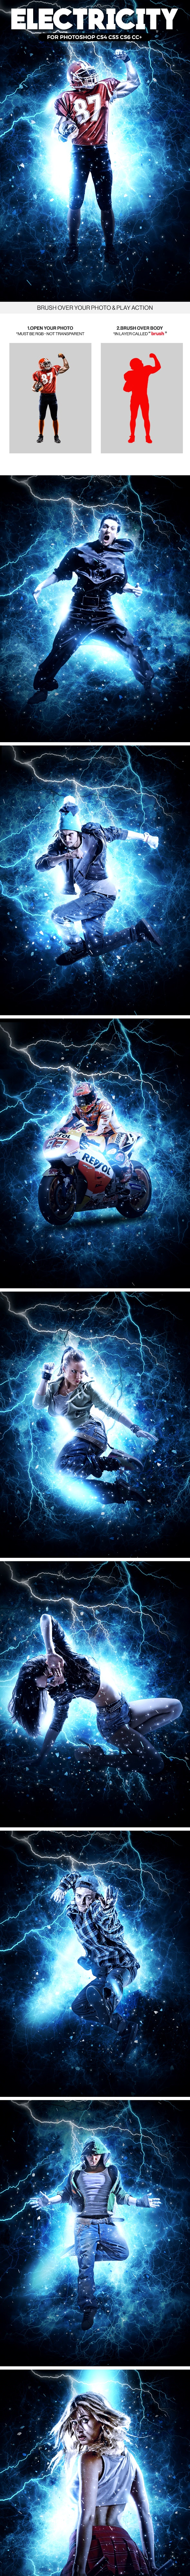 Electricity Photoshop Action - Photo Effects Actions